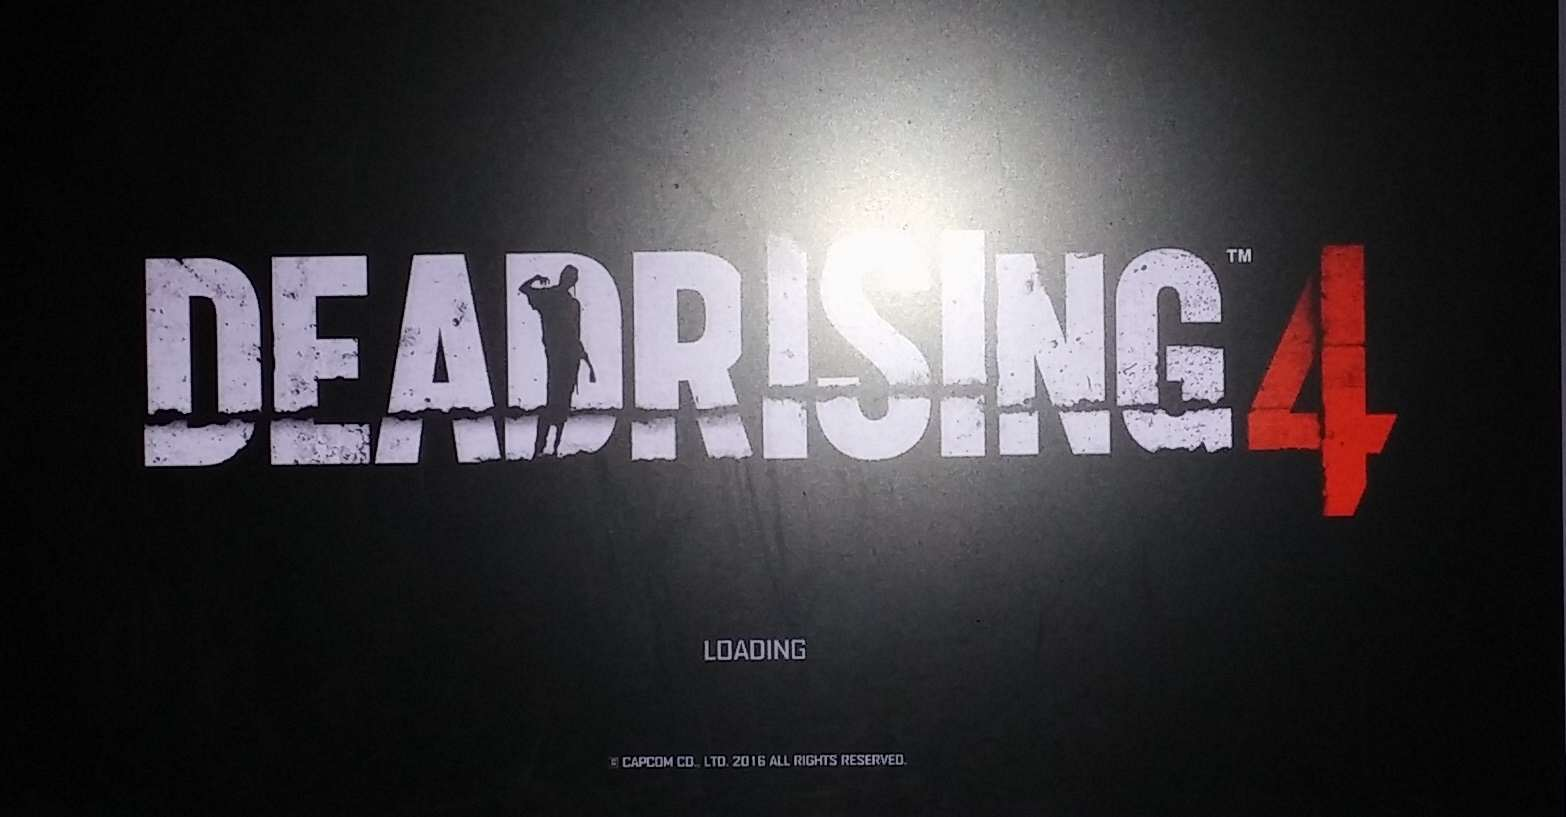 YlKY8nc New Leak Suggests Dead Rising 4 To Be Announced At E3